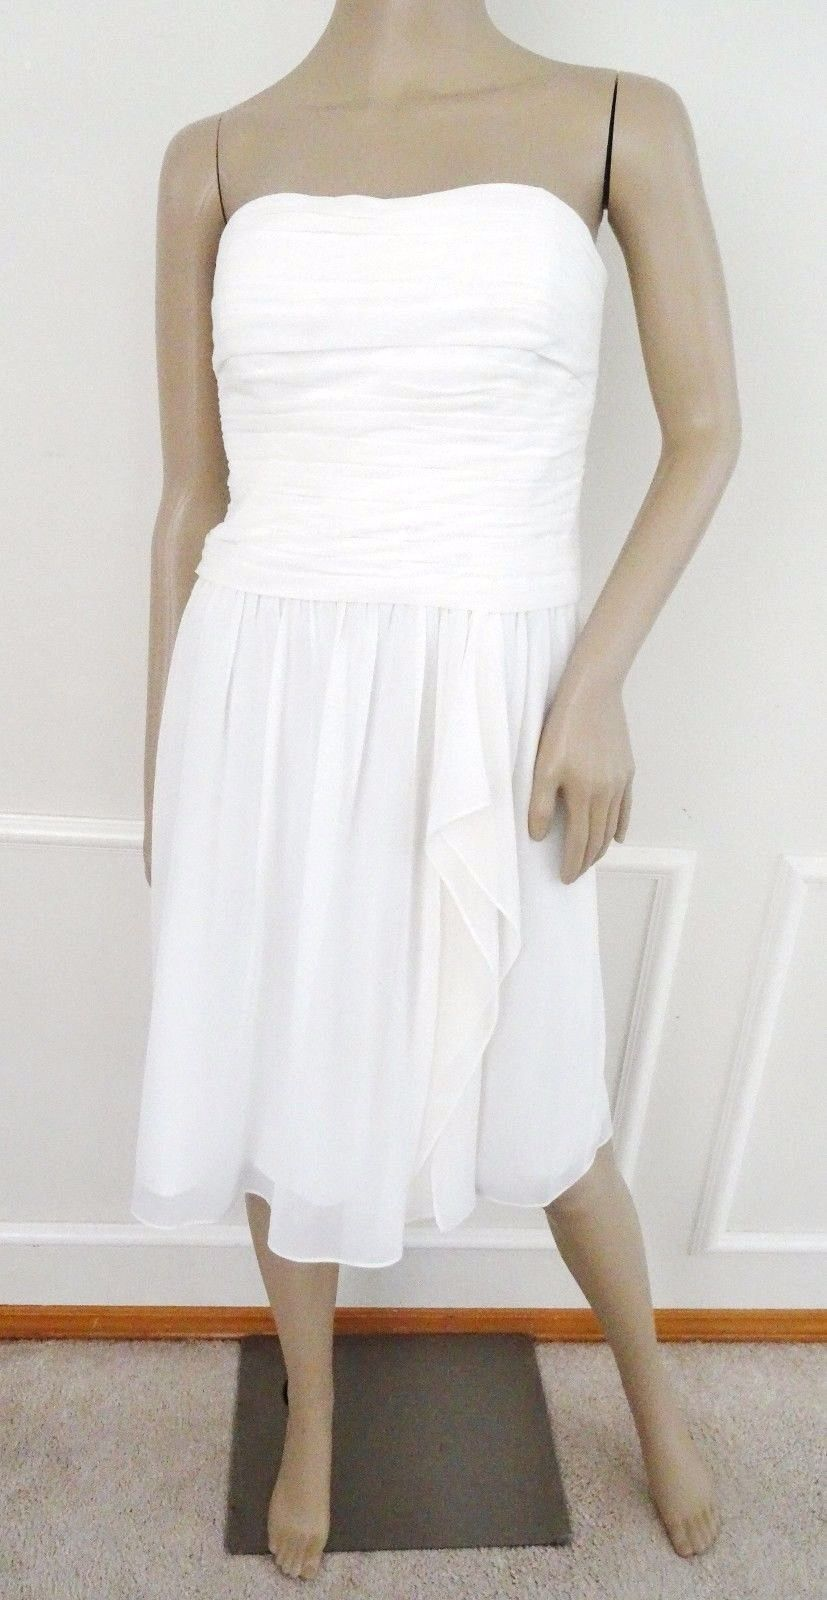 Primary image for Nwt Lauren Ralph Lauren Strapless Cocktail Semi Formal Prom Dress Sz 10 White